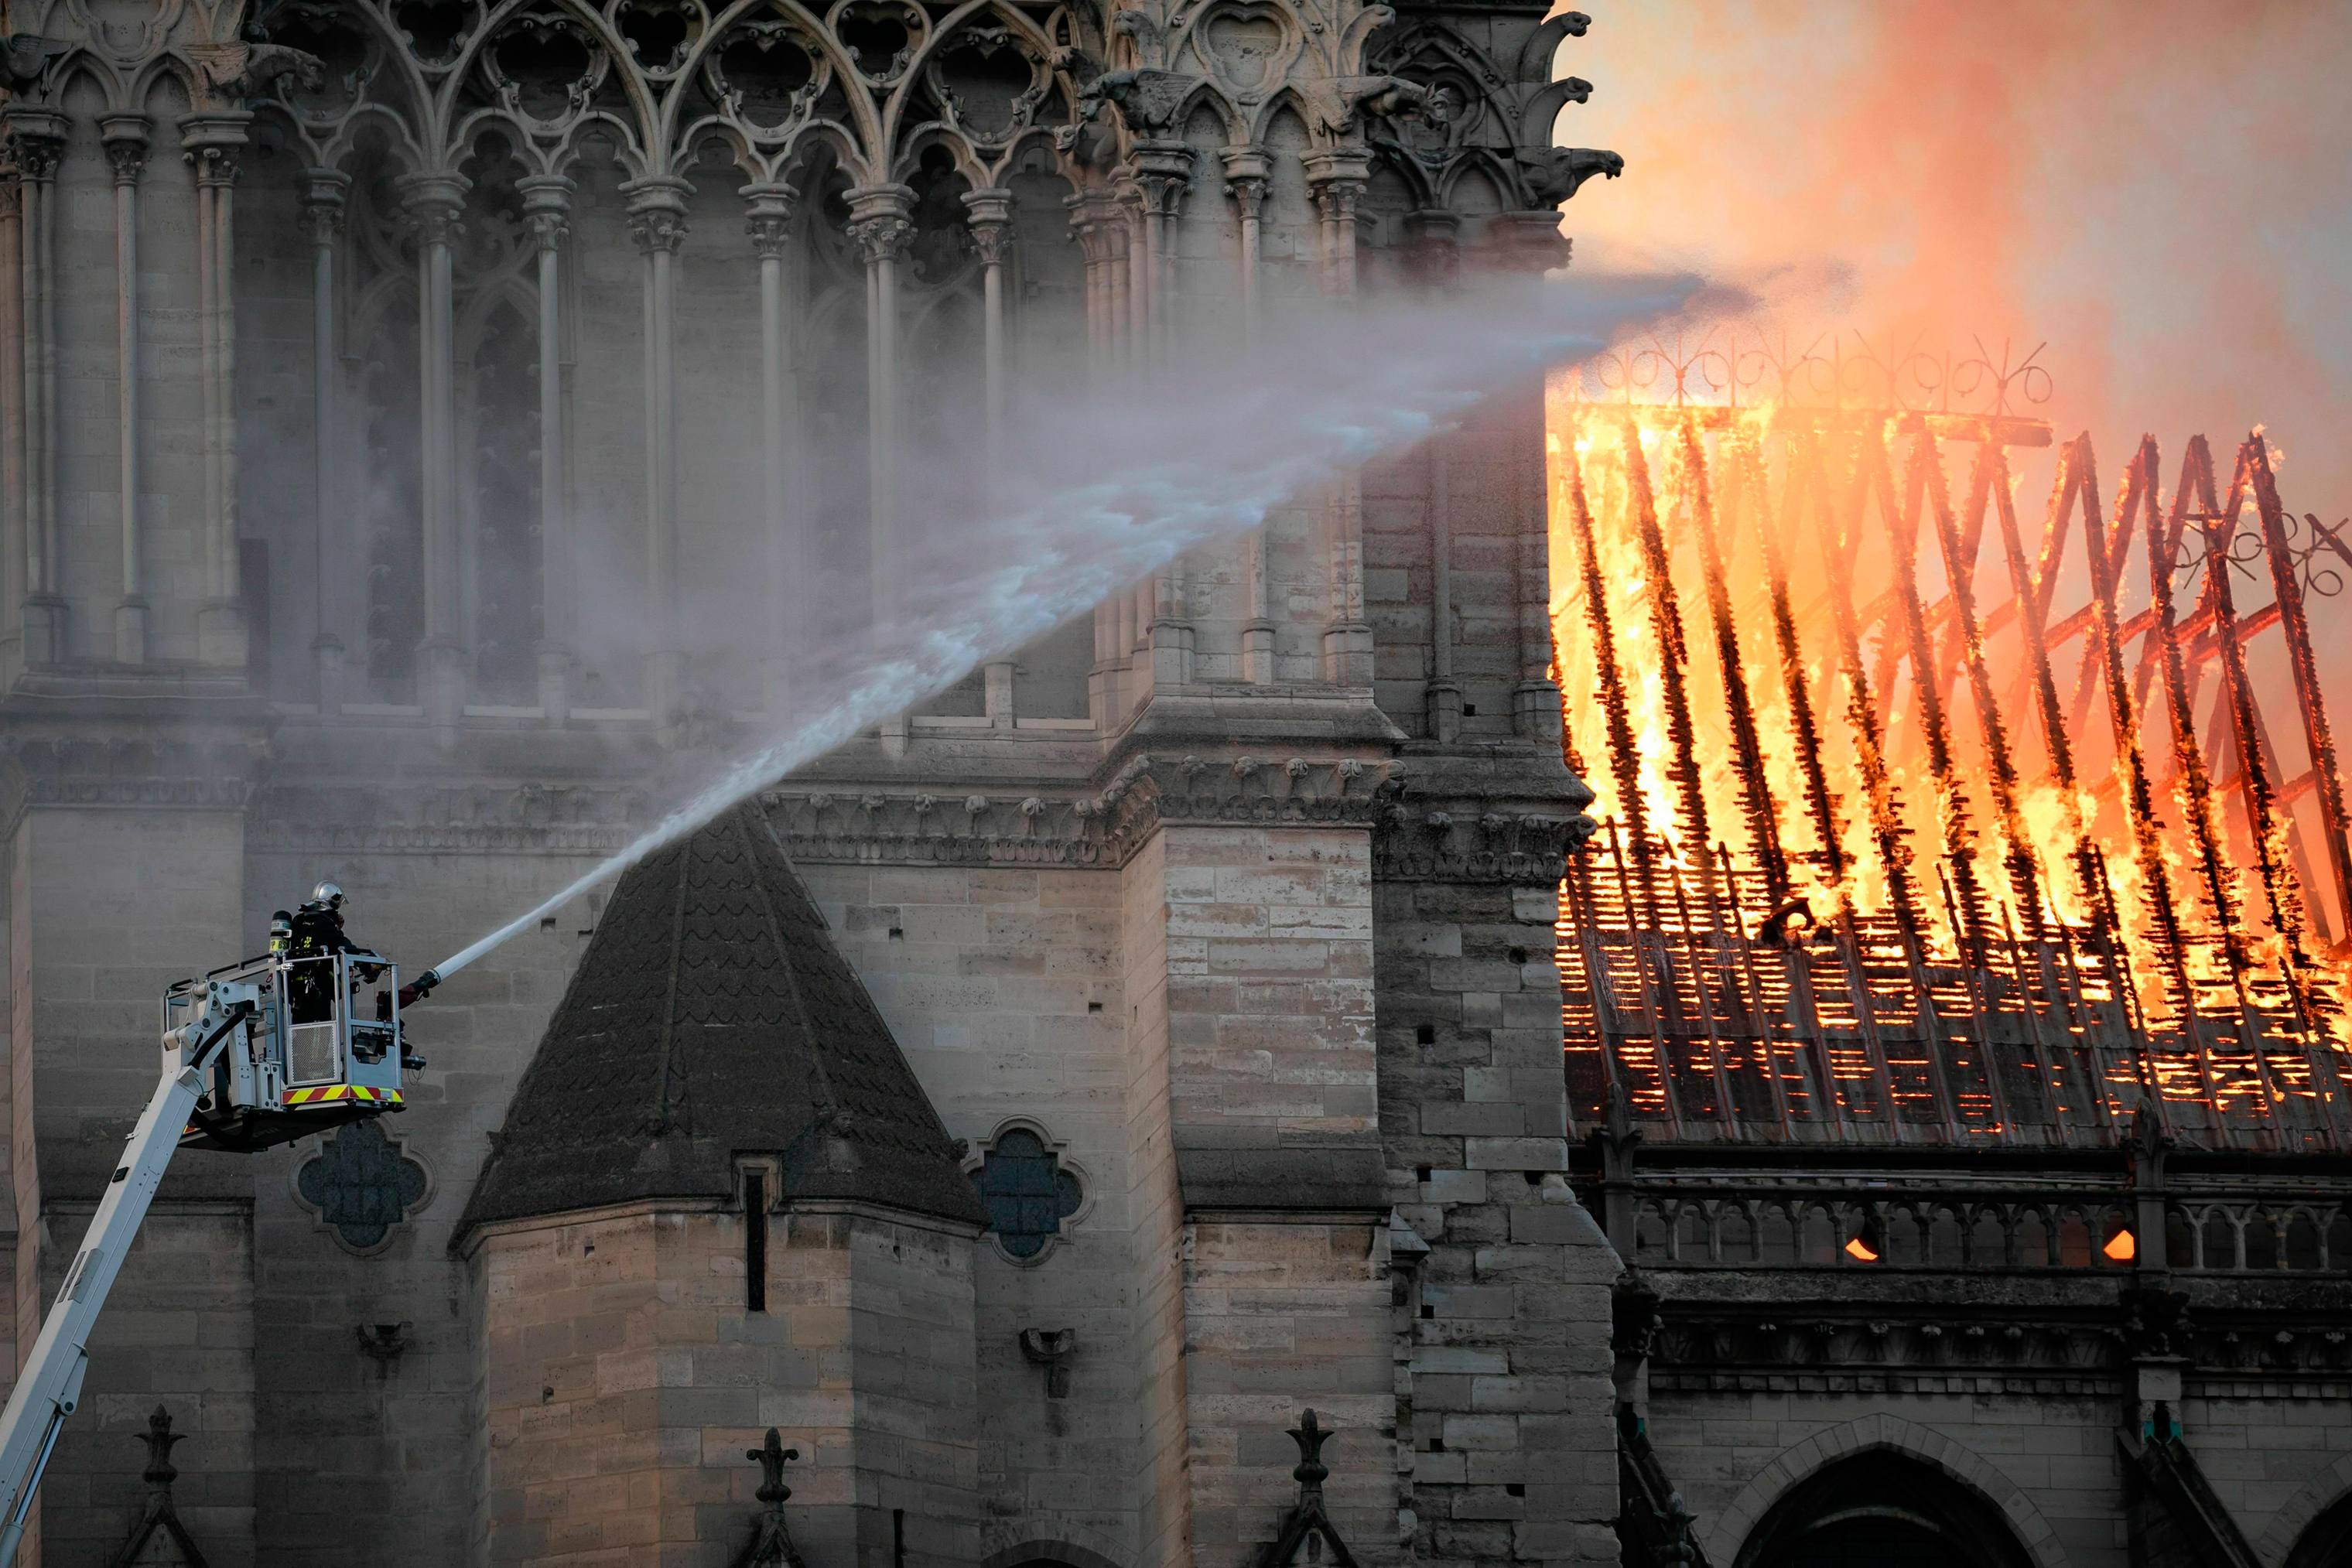 The Notre-Dame Cathedral in Paris on fire, April 15, 2019.